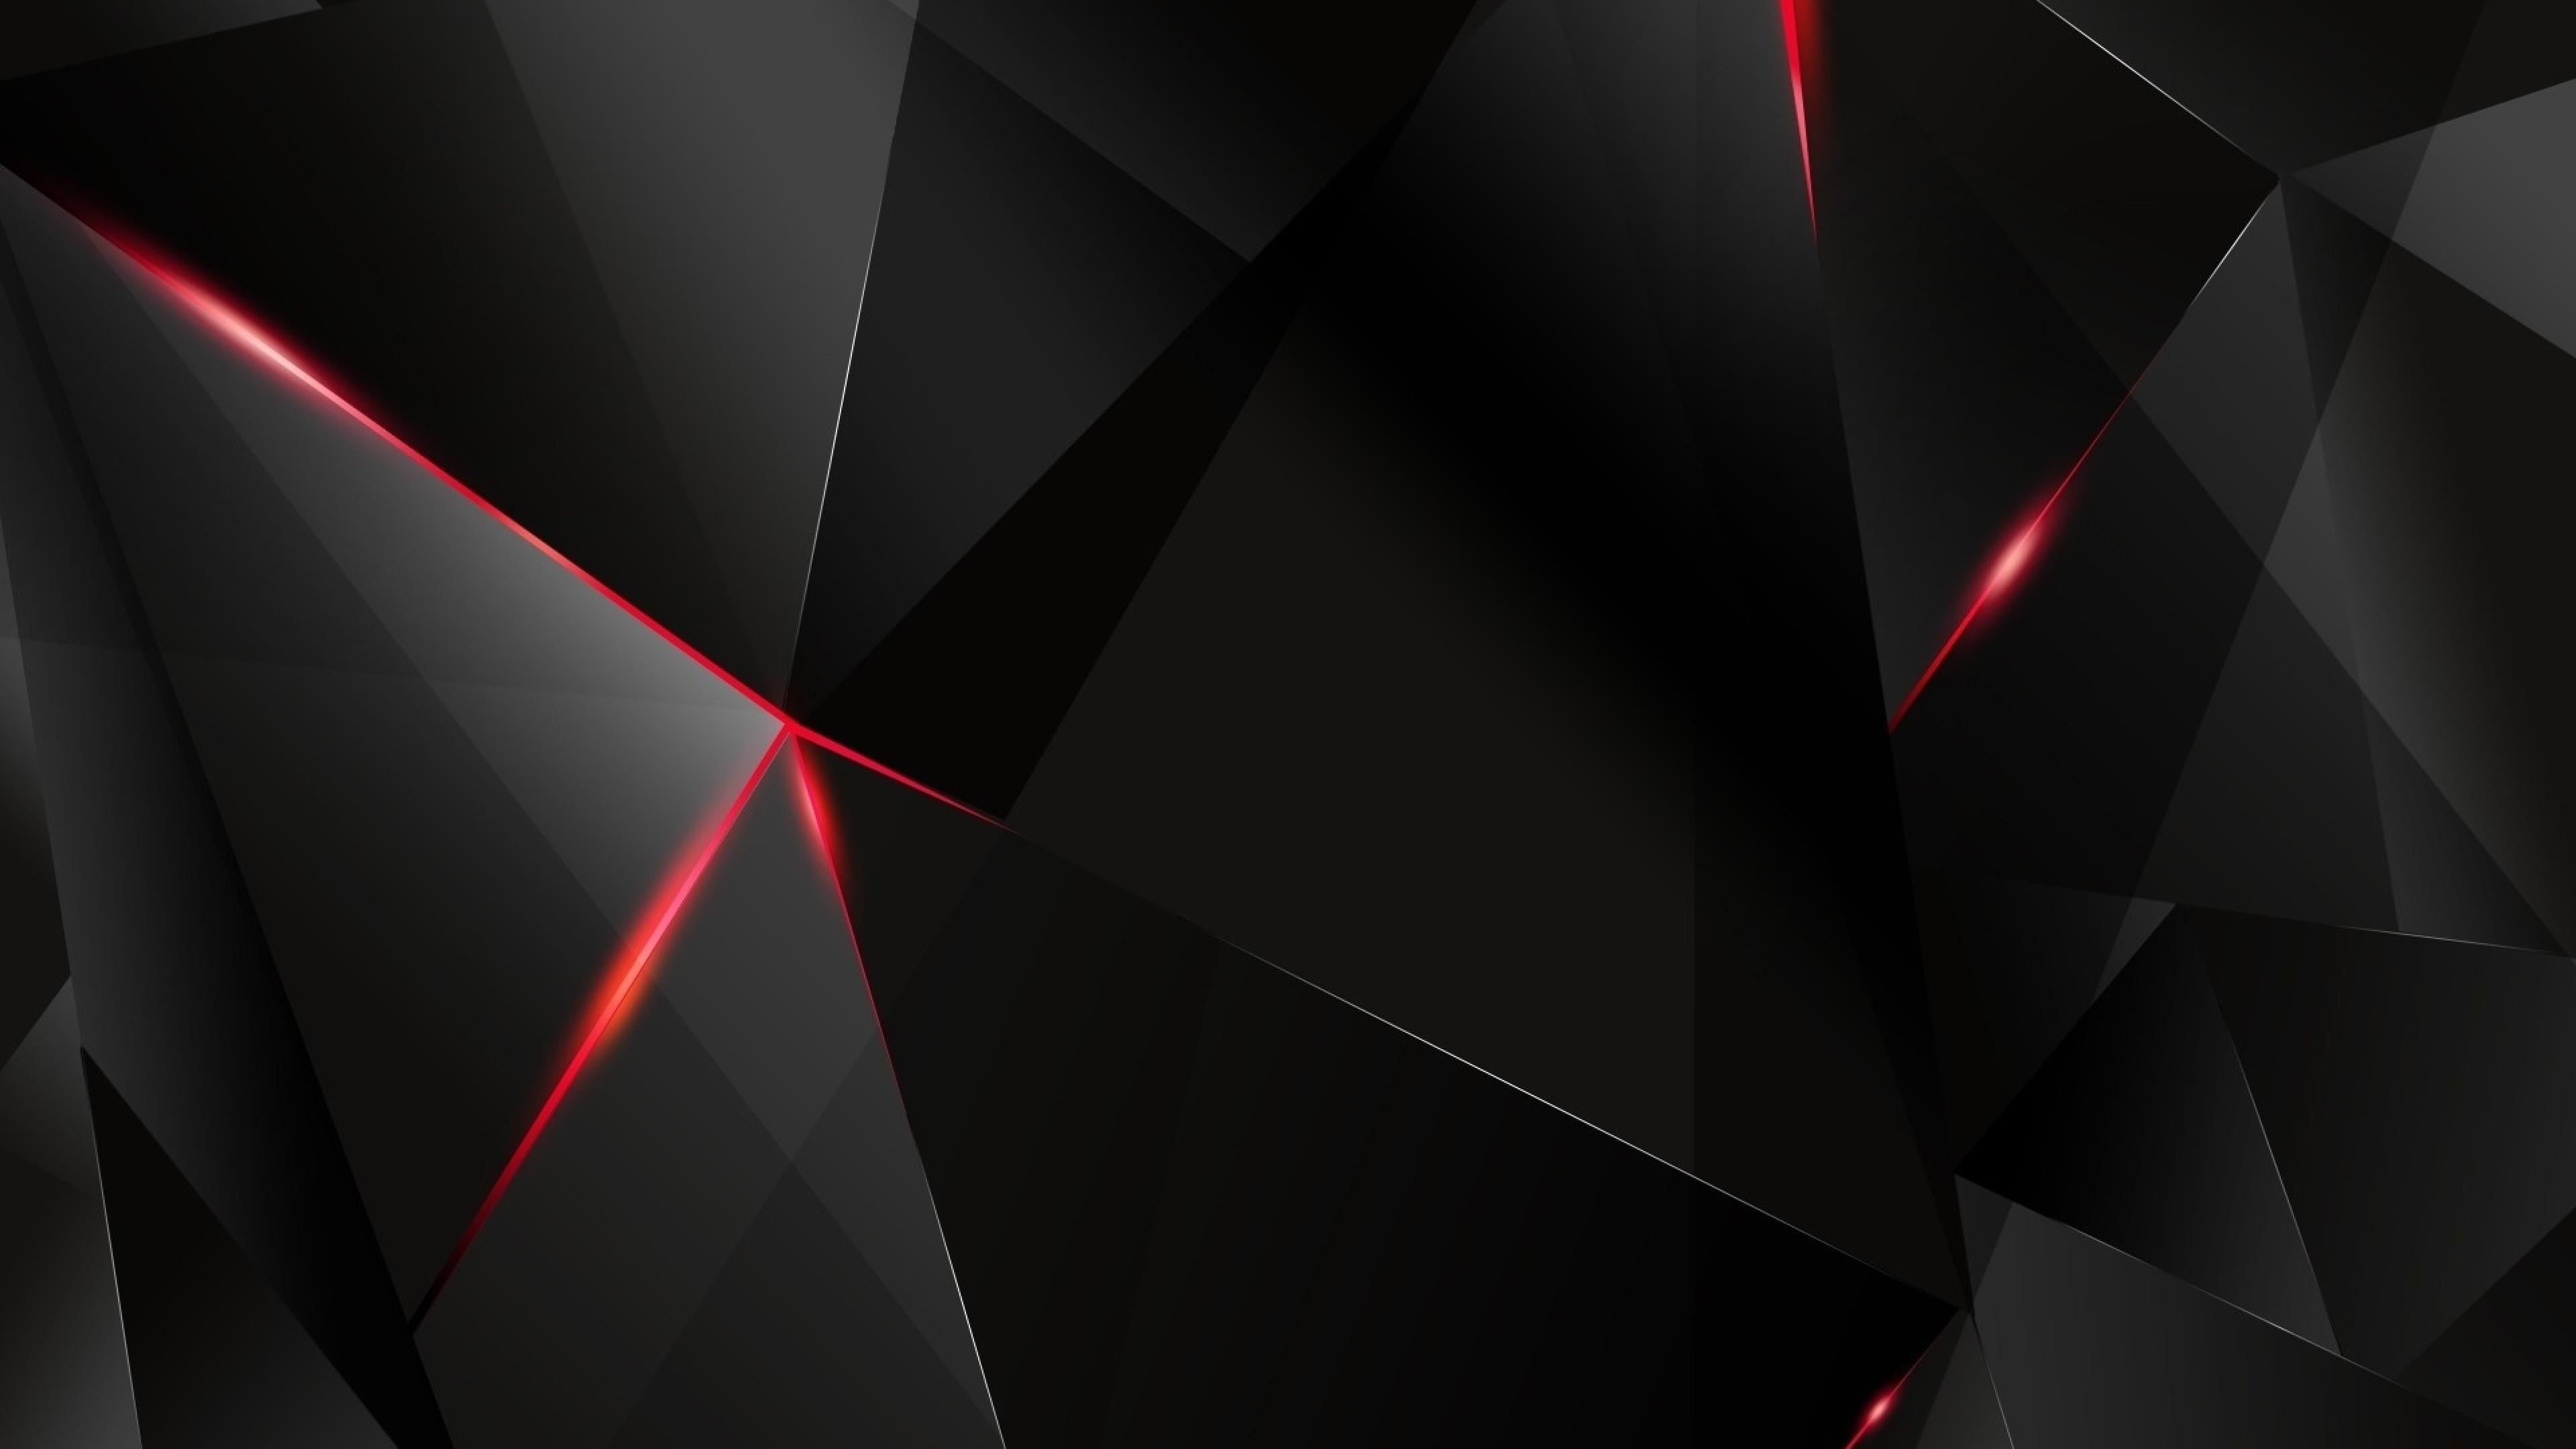 Dark Red Light Line Design Angle Graphics Symmetry Triangle Darkness Graphic Design 4k Red And Black Wallpaper Dark Black Wallpaper Dark Wallpaper